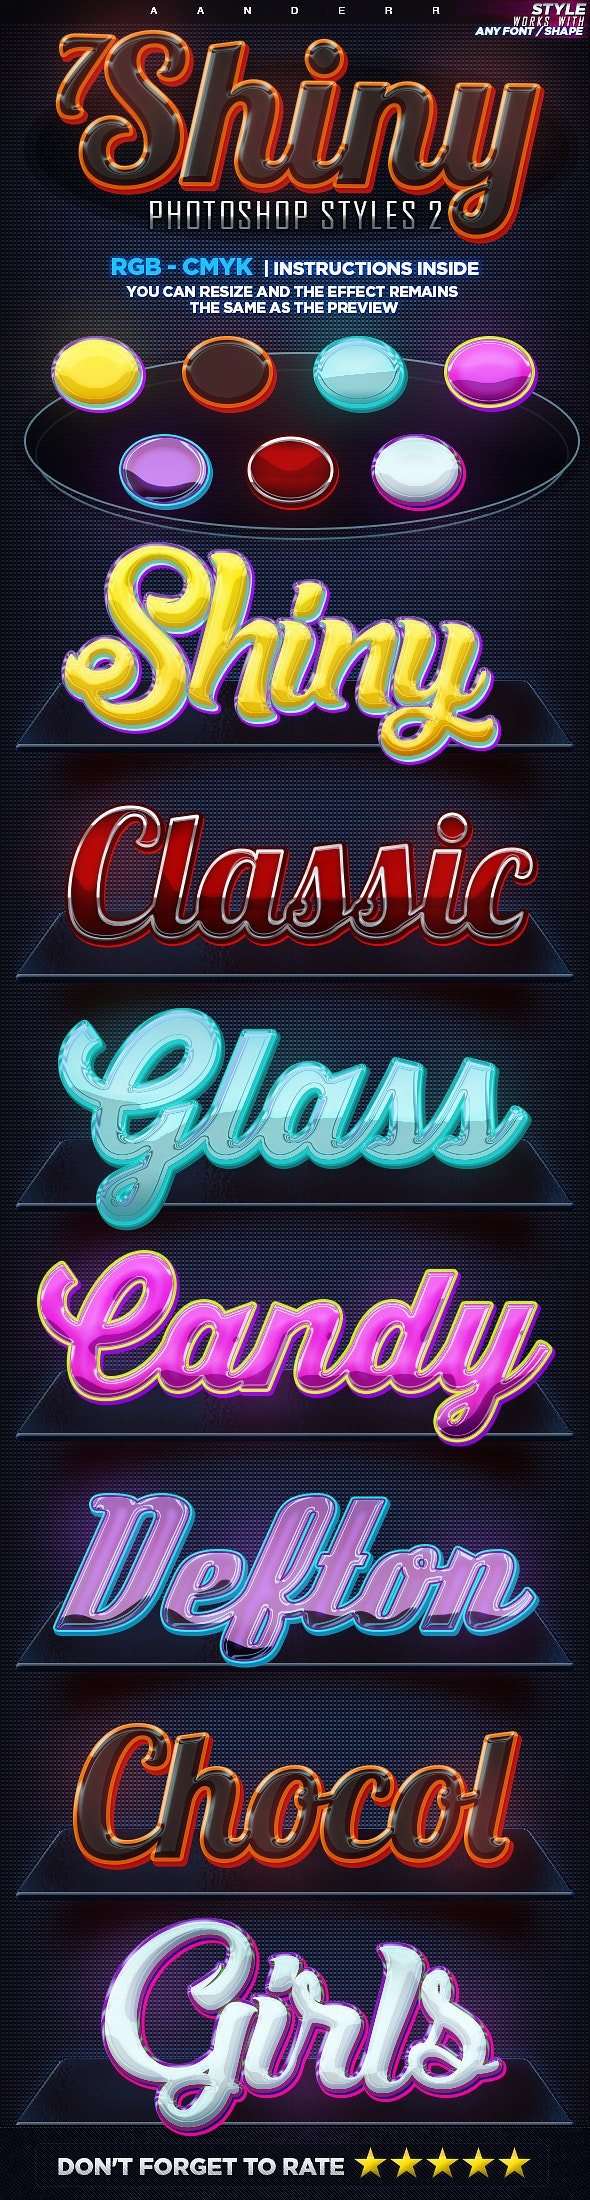 7 Shiny Photoshop Styles 2 - Text Effects Styles